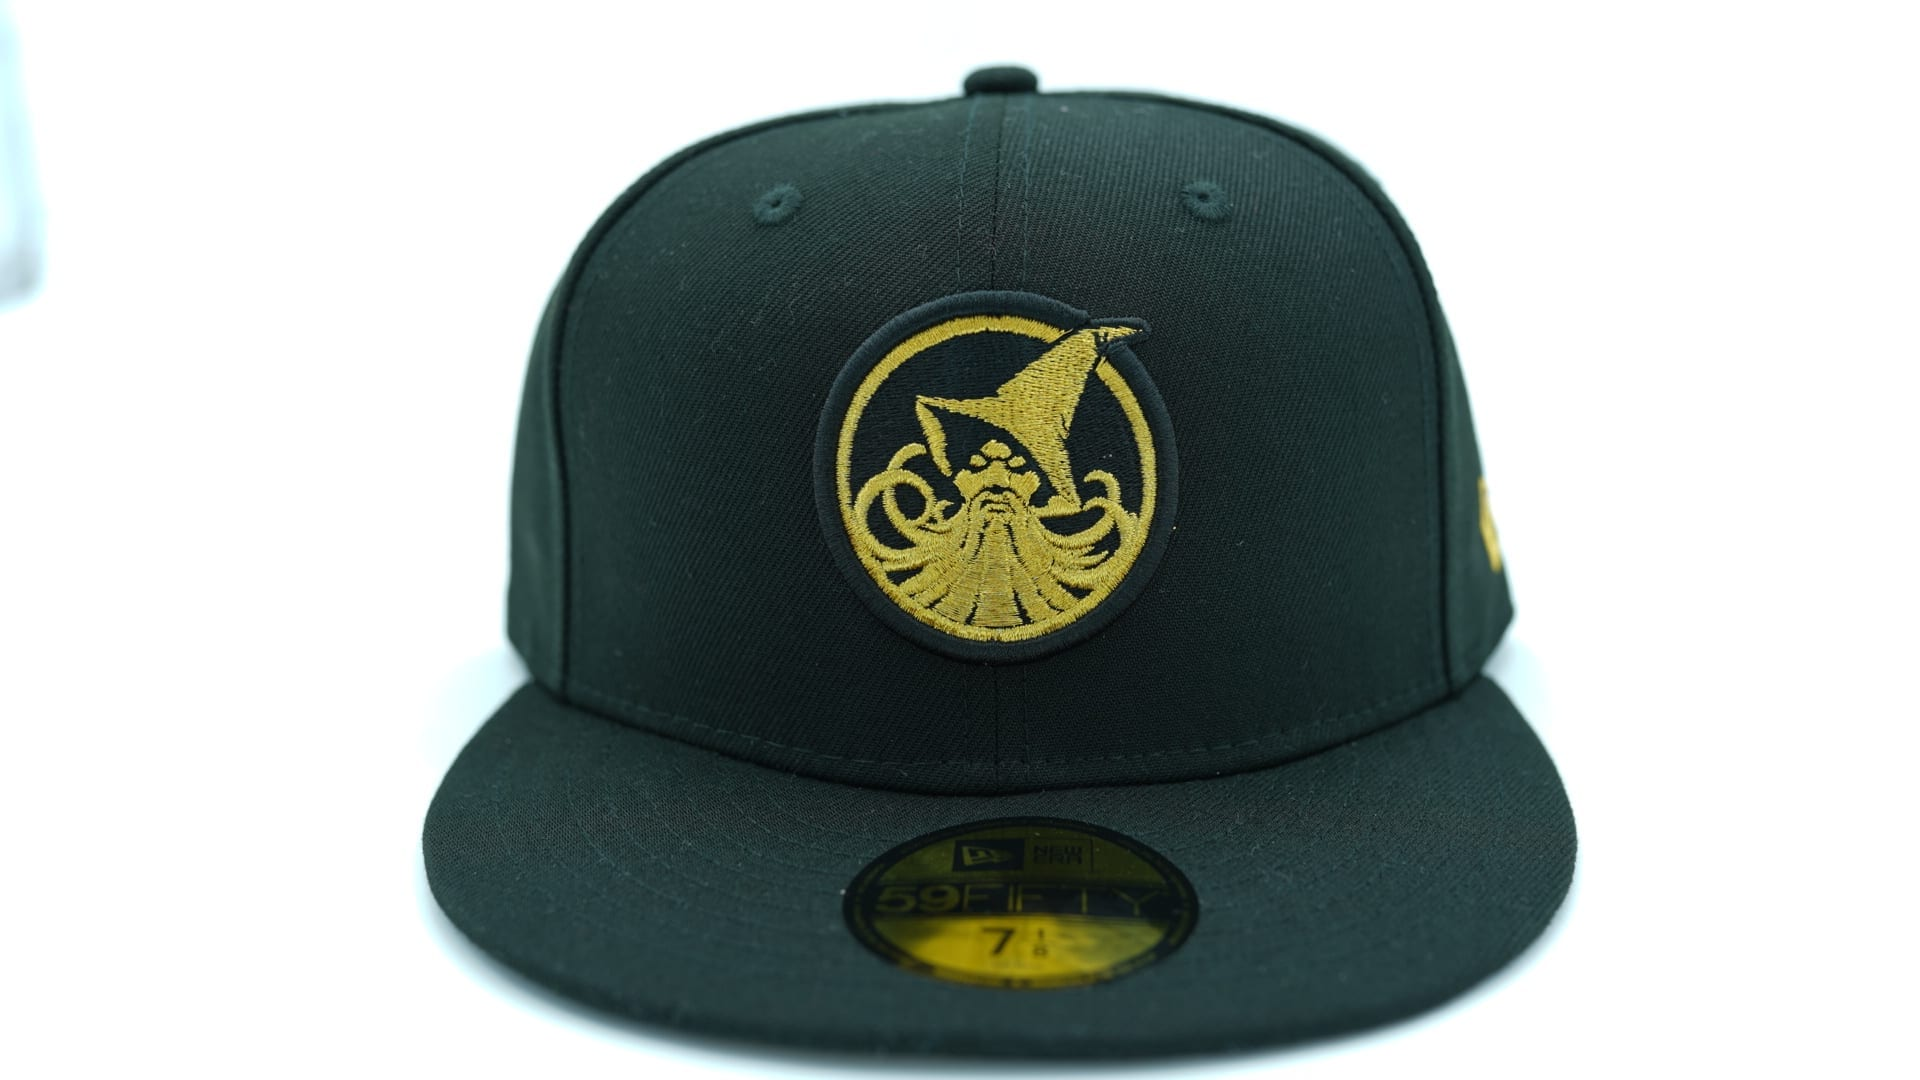 velcro patch new era 59fifty baseball cap